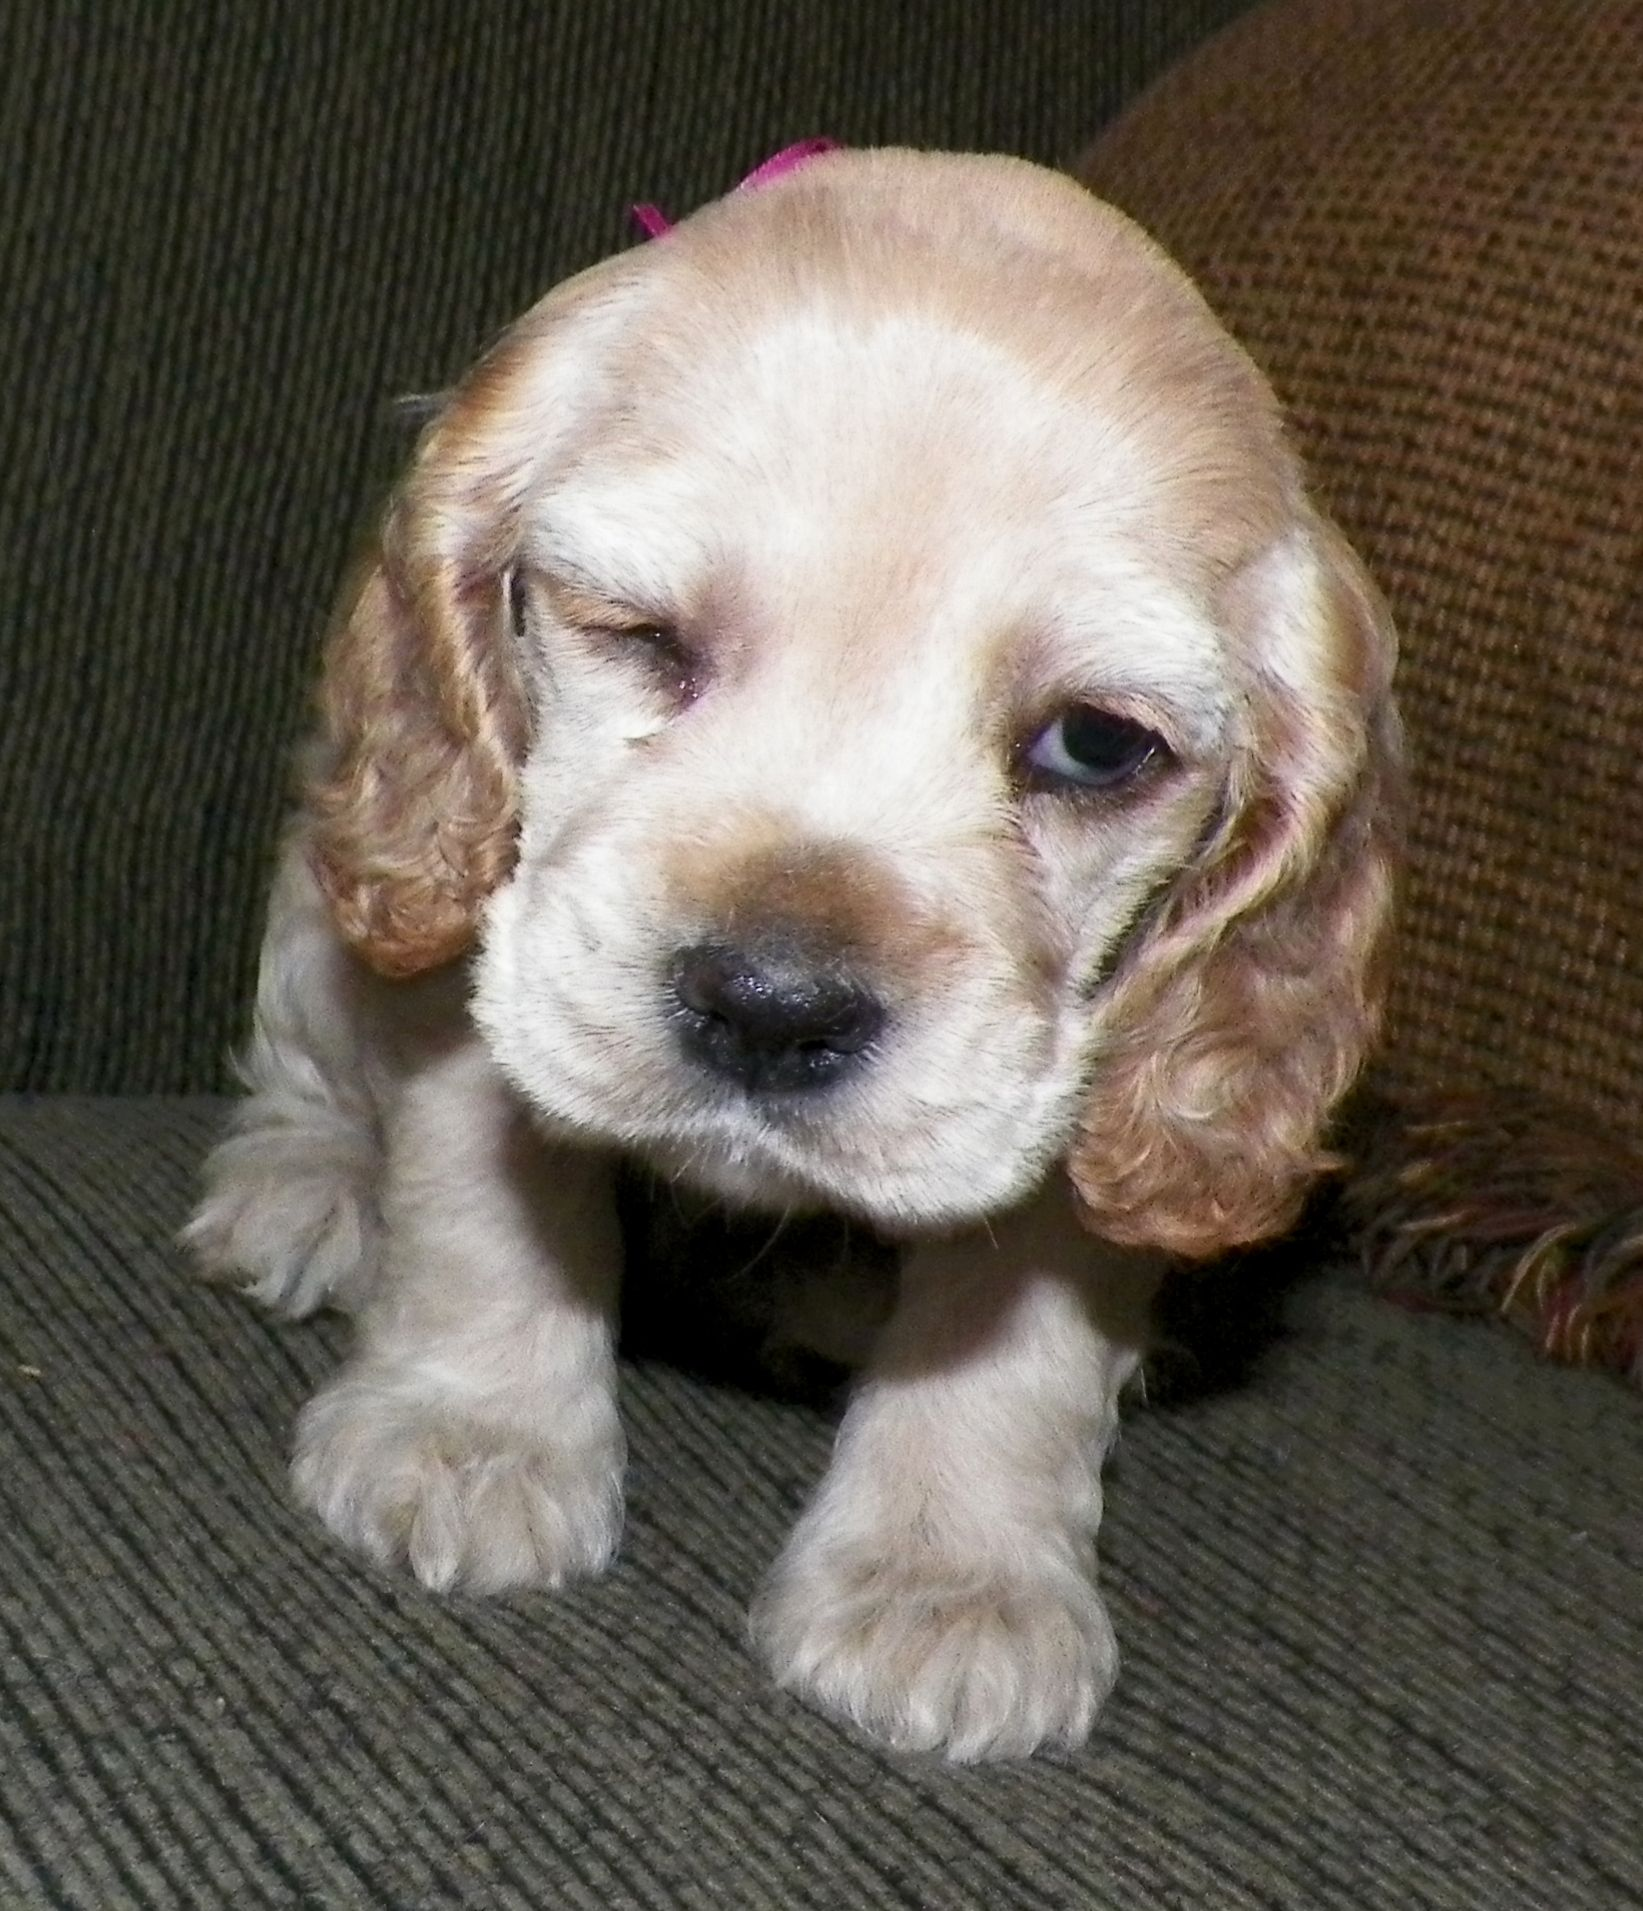 Miss Pink 5 Weeks Old Giving The Camera A Little Wink Cocker Spaniel Puppies Spaniel Puppies Cocker Spaniel